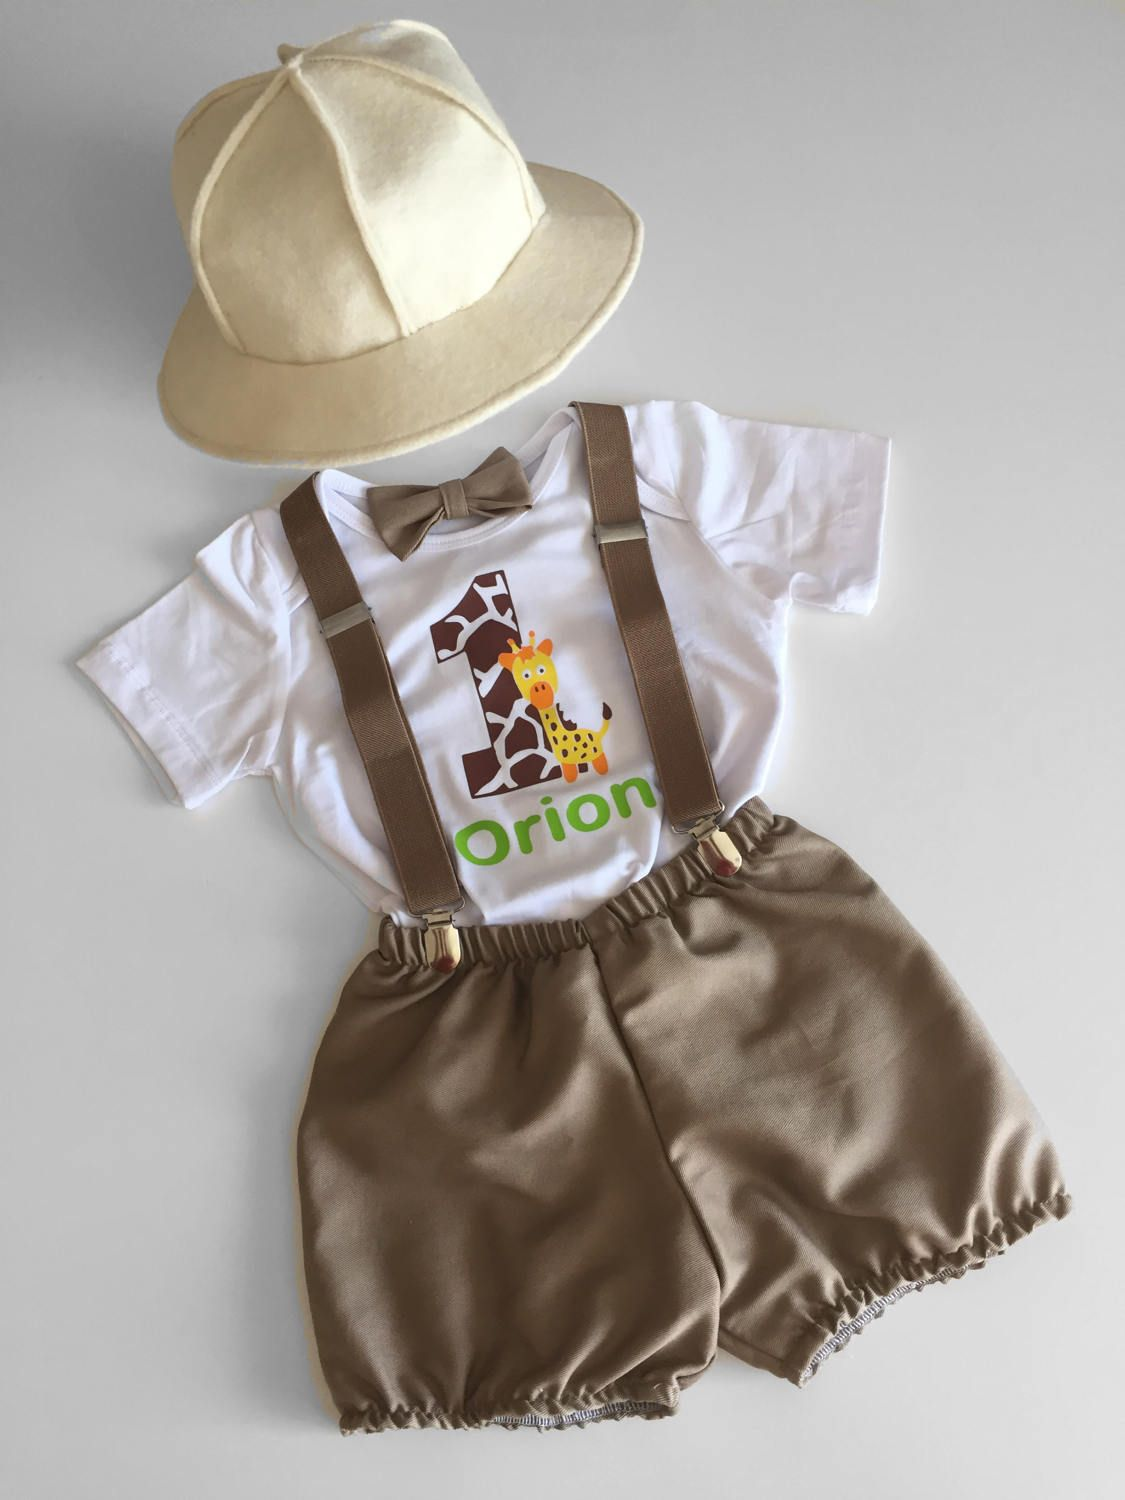 65f972a1000f7 Safari Explorer Theme Cake Smash Outfit Boys...Personalised Safari Theme  with Felt Hat Baby Boy 1st Birthday Outfit..Baby photo shoot outfit by ...